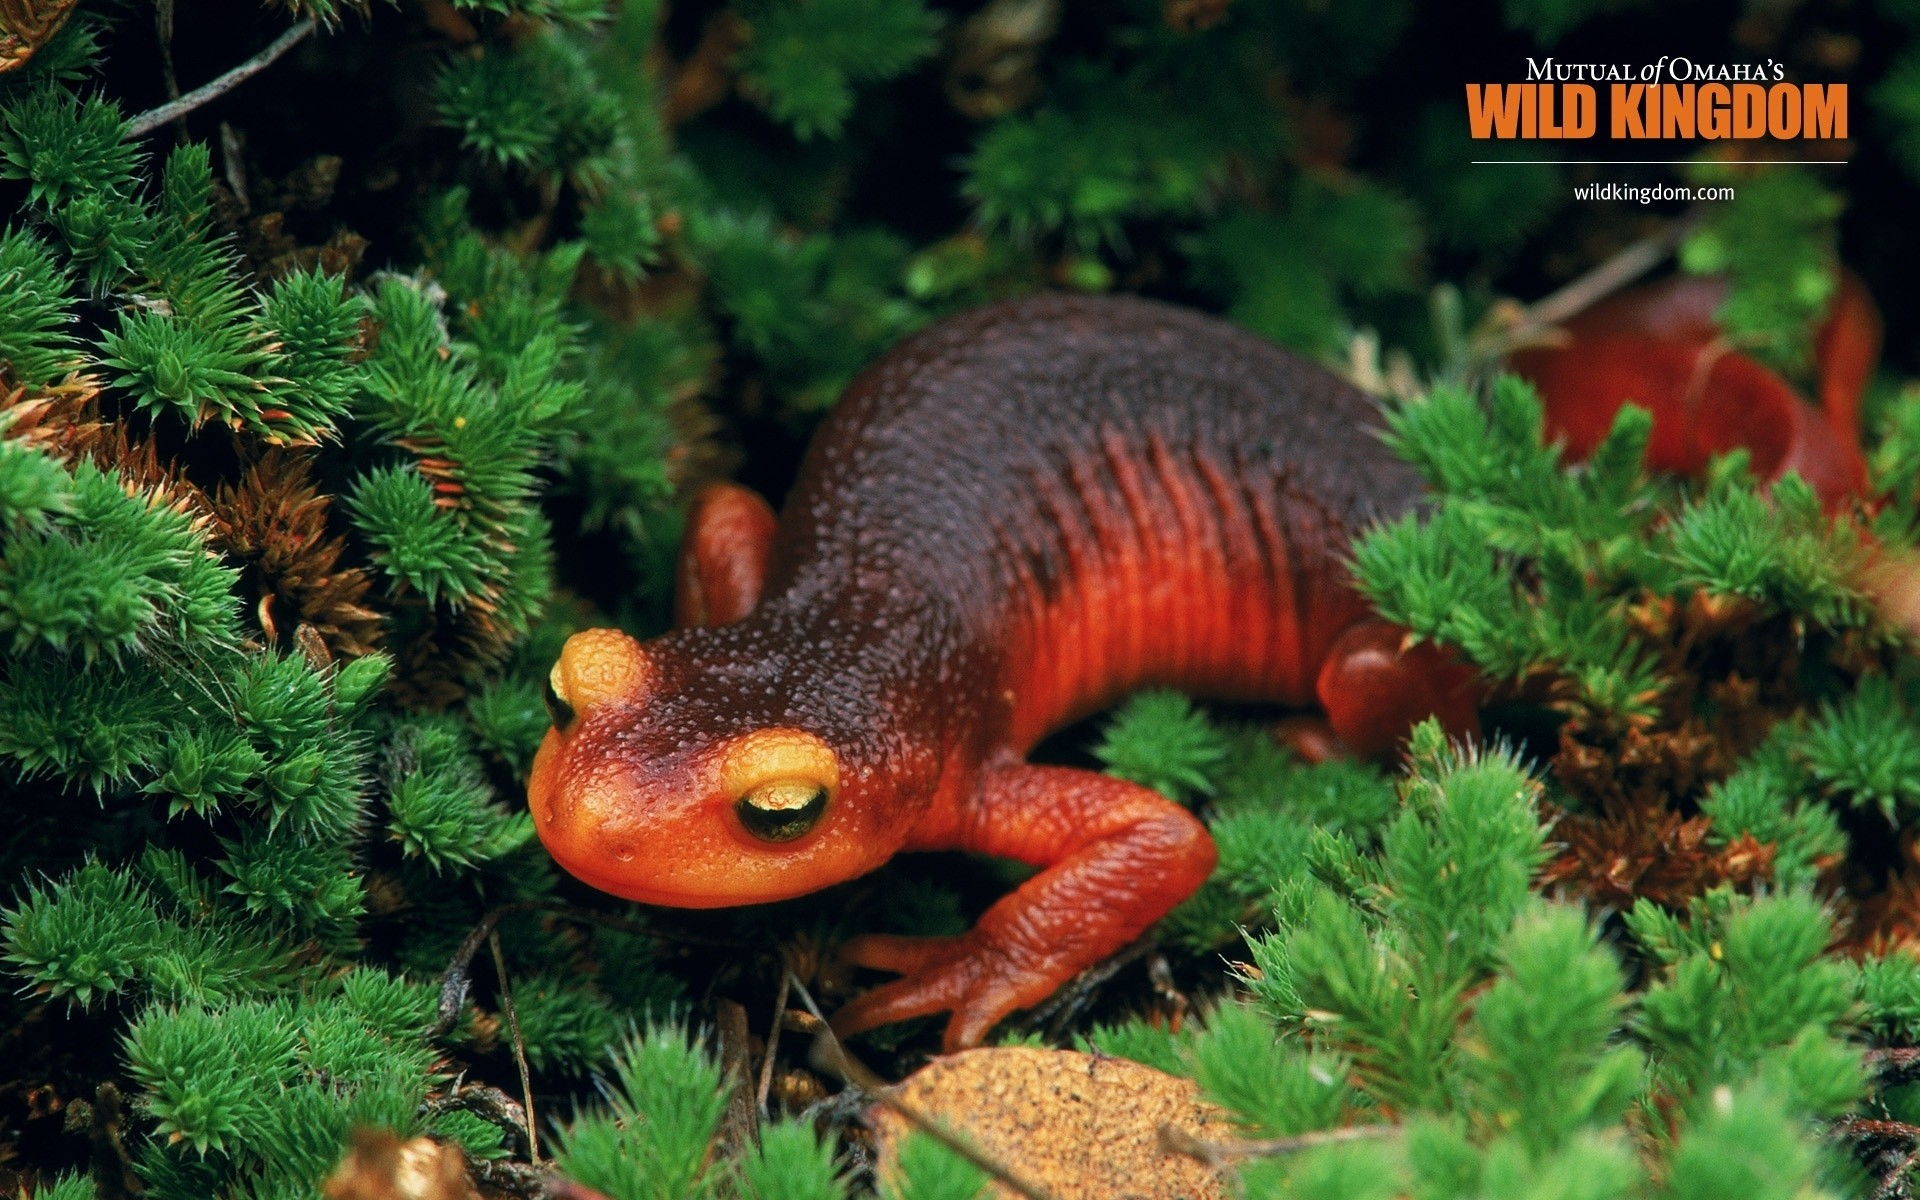 reptiles and frogs nature outdoors reptile tree wildlife wood horizontal biology salamander